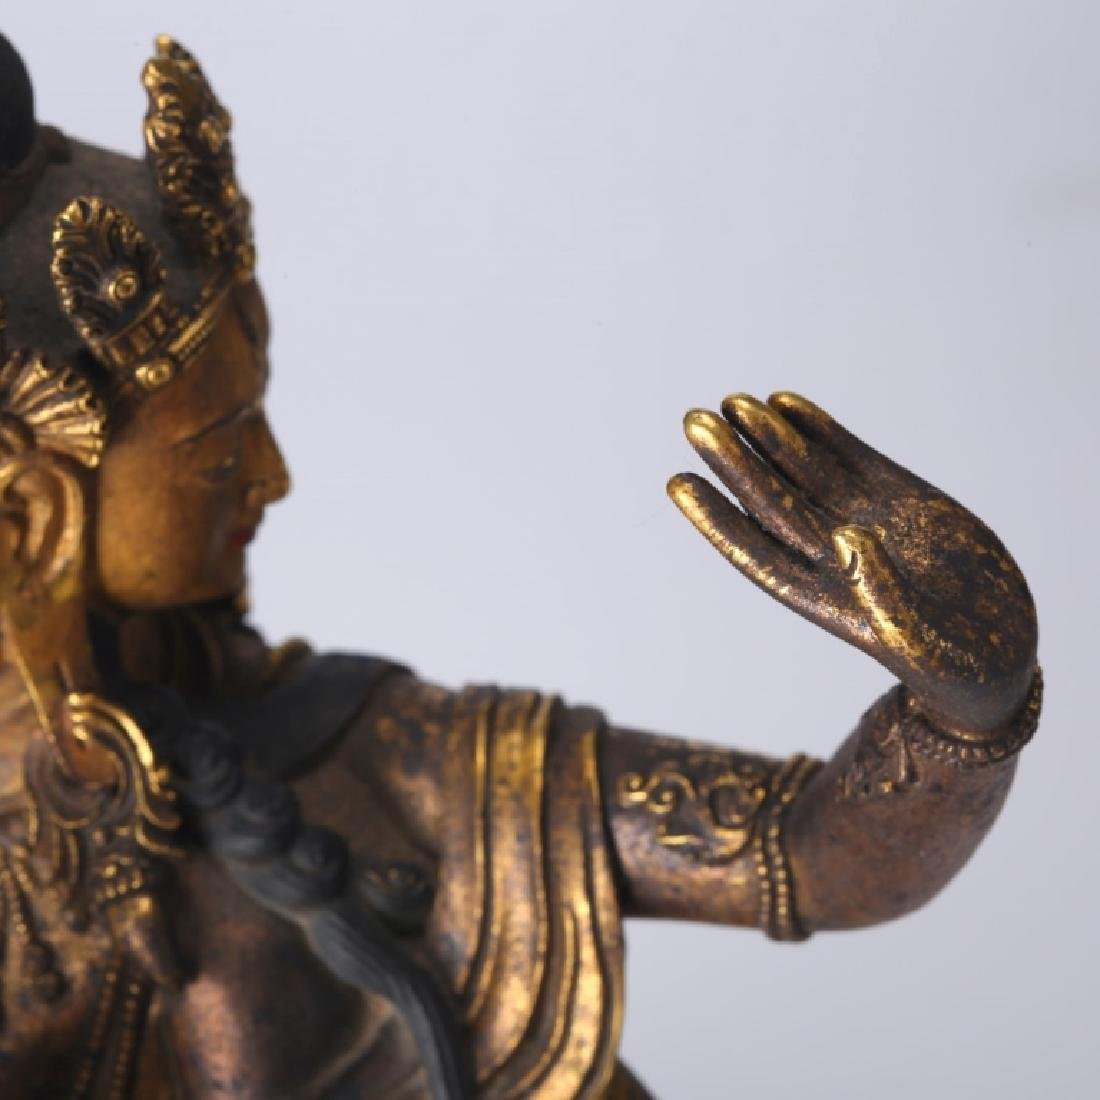 Tibetan Gilt Bronze Guanyin, open Lotus Throne - 8